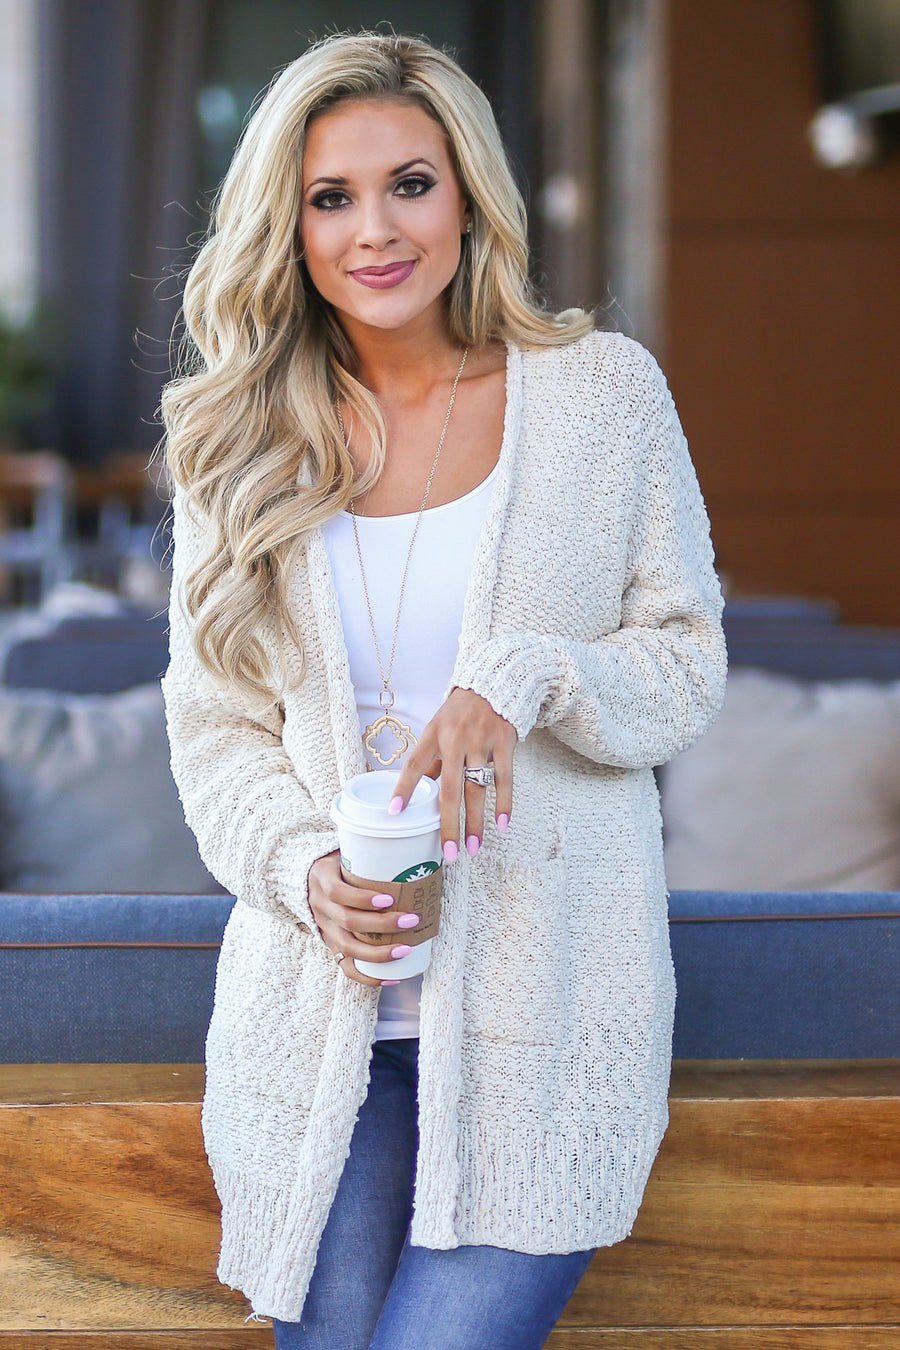 Time To Chill Knit Cardigan - Cream cozy knit open-front sweater, closet candy boutique 1